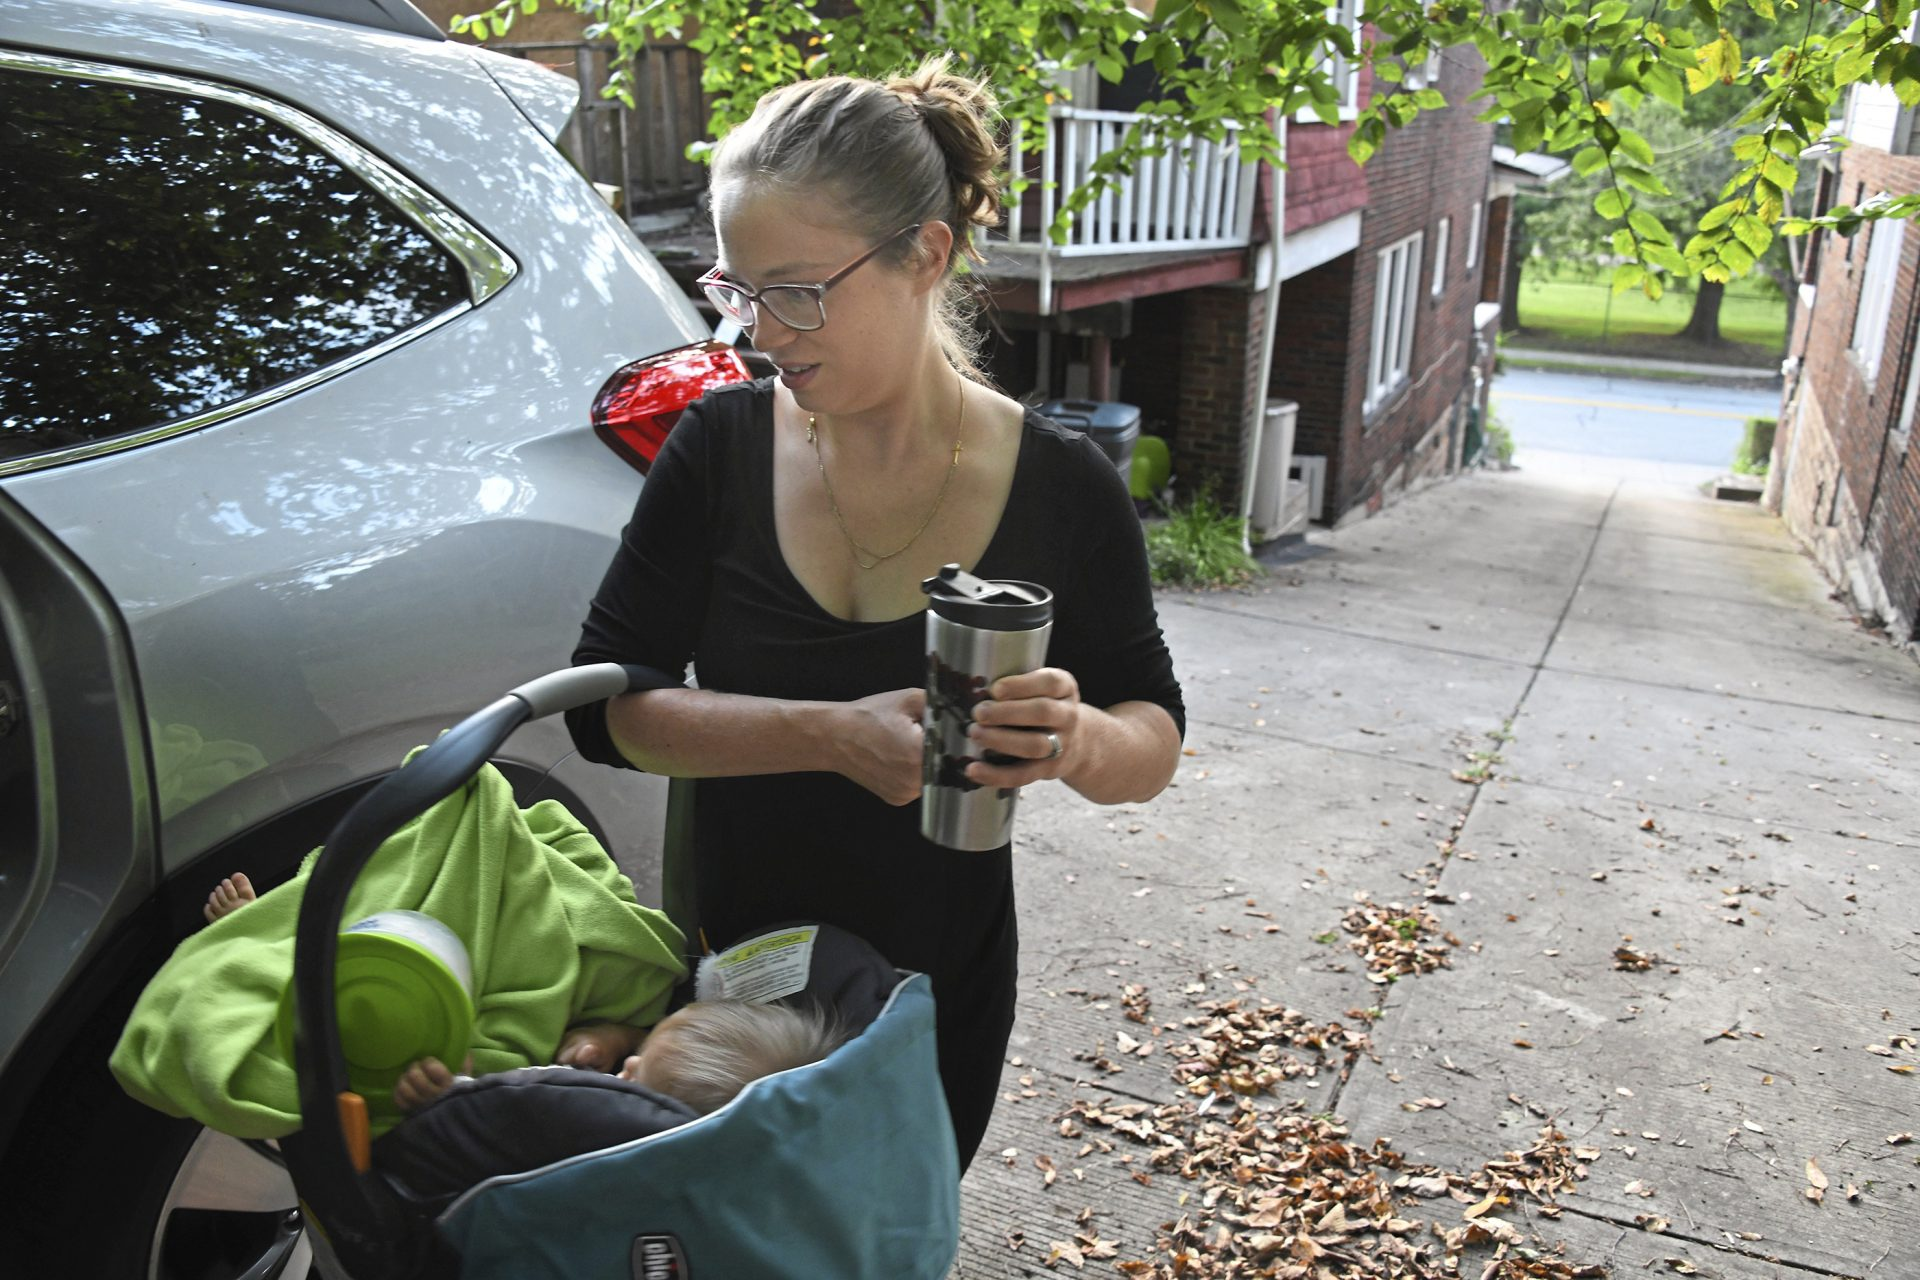 Lauren Narbey, a certified nurse midwife and a certified nurse practitioner, carries her daughter, 1-year-old Eleanor, toward the car, Friday, Sept. 6, 2019, in the Highland Park neighborhood of Pittsburgh.